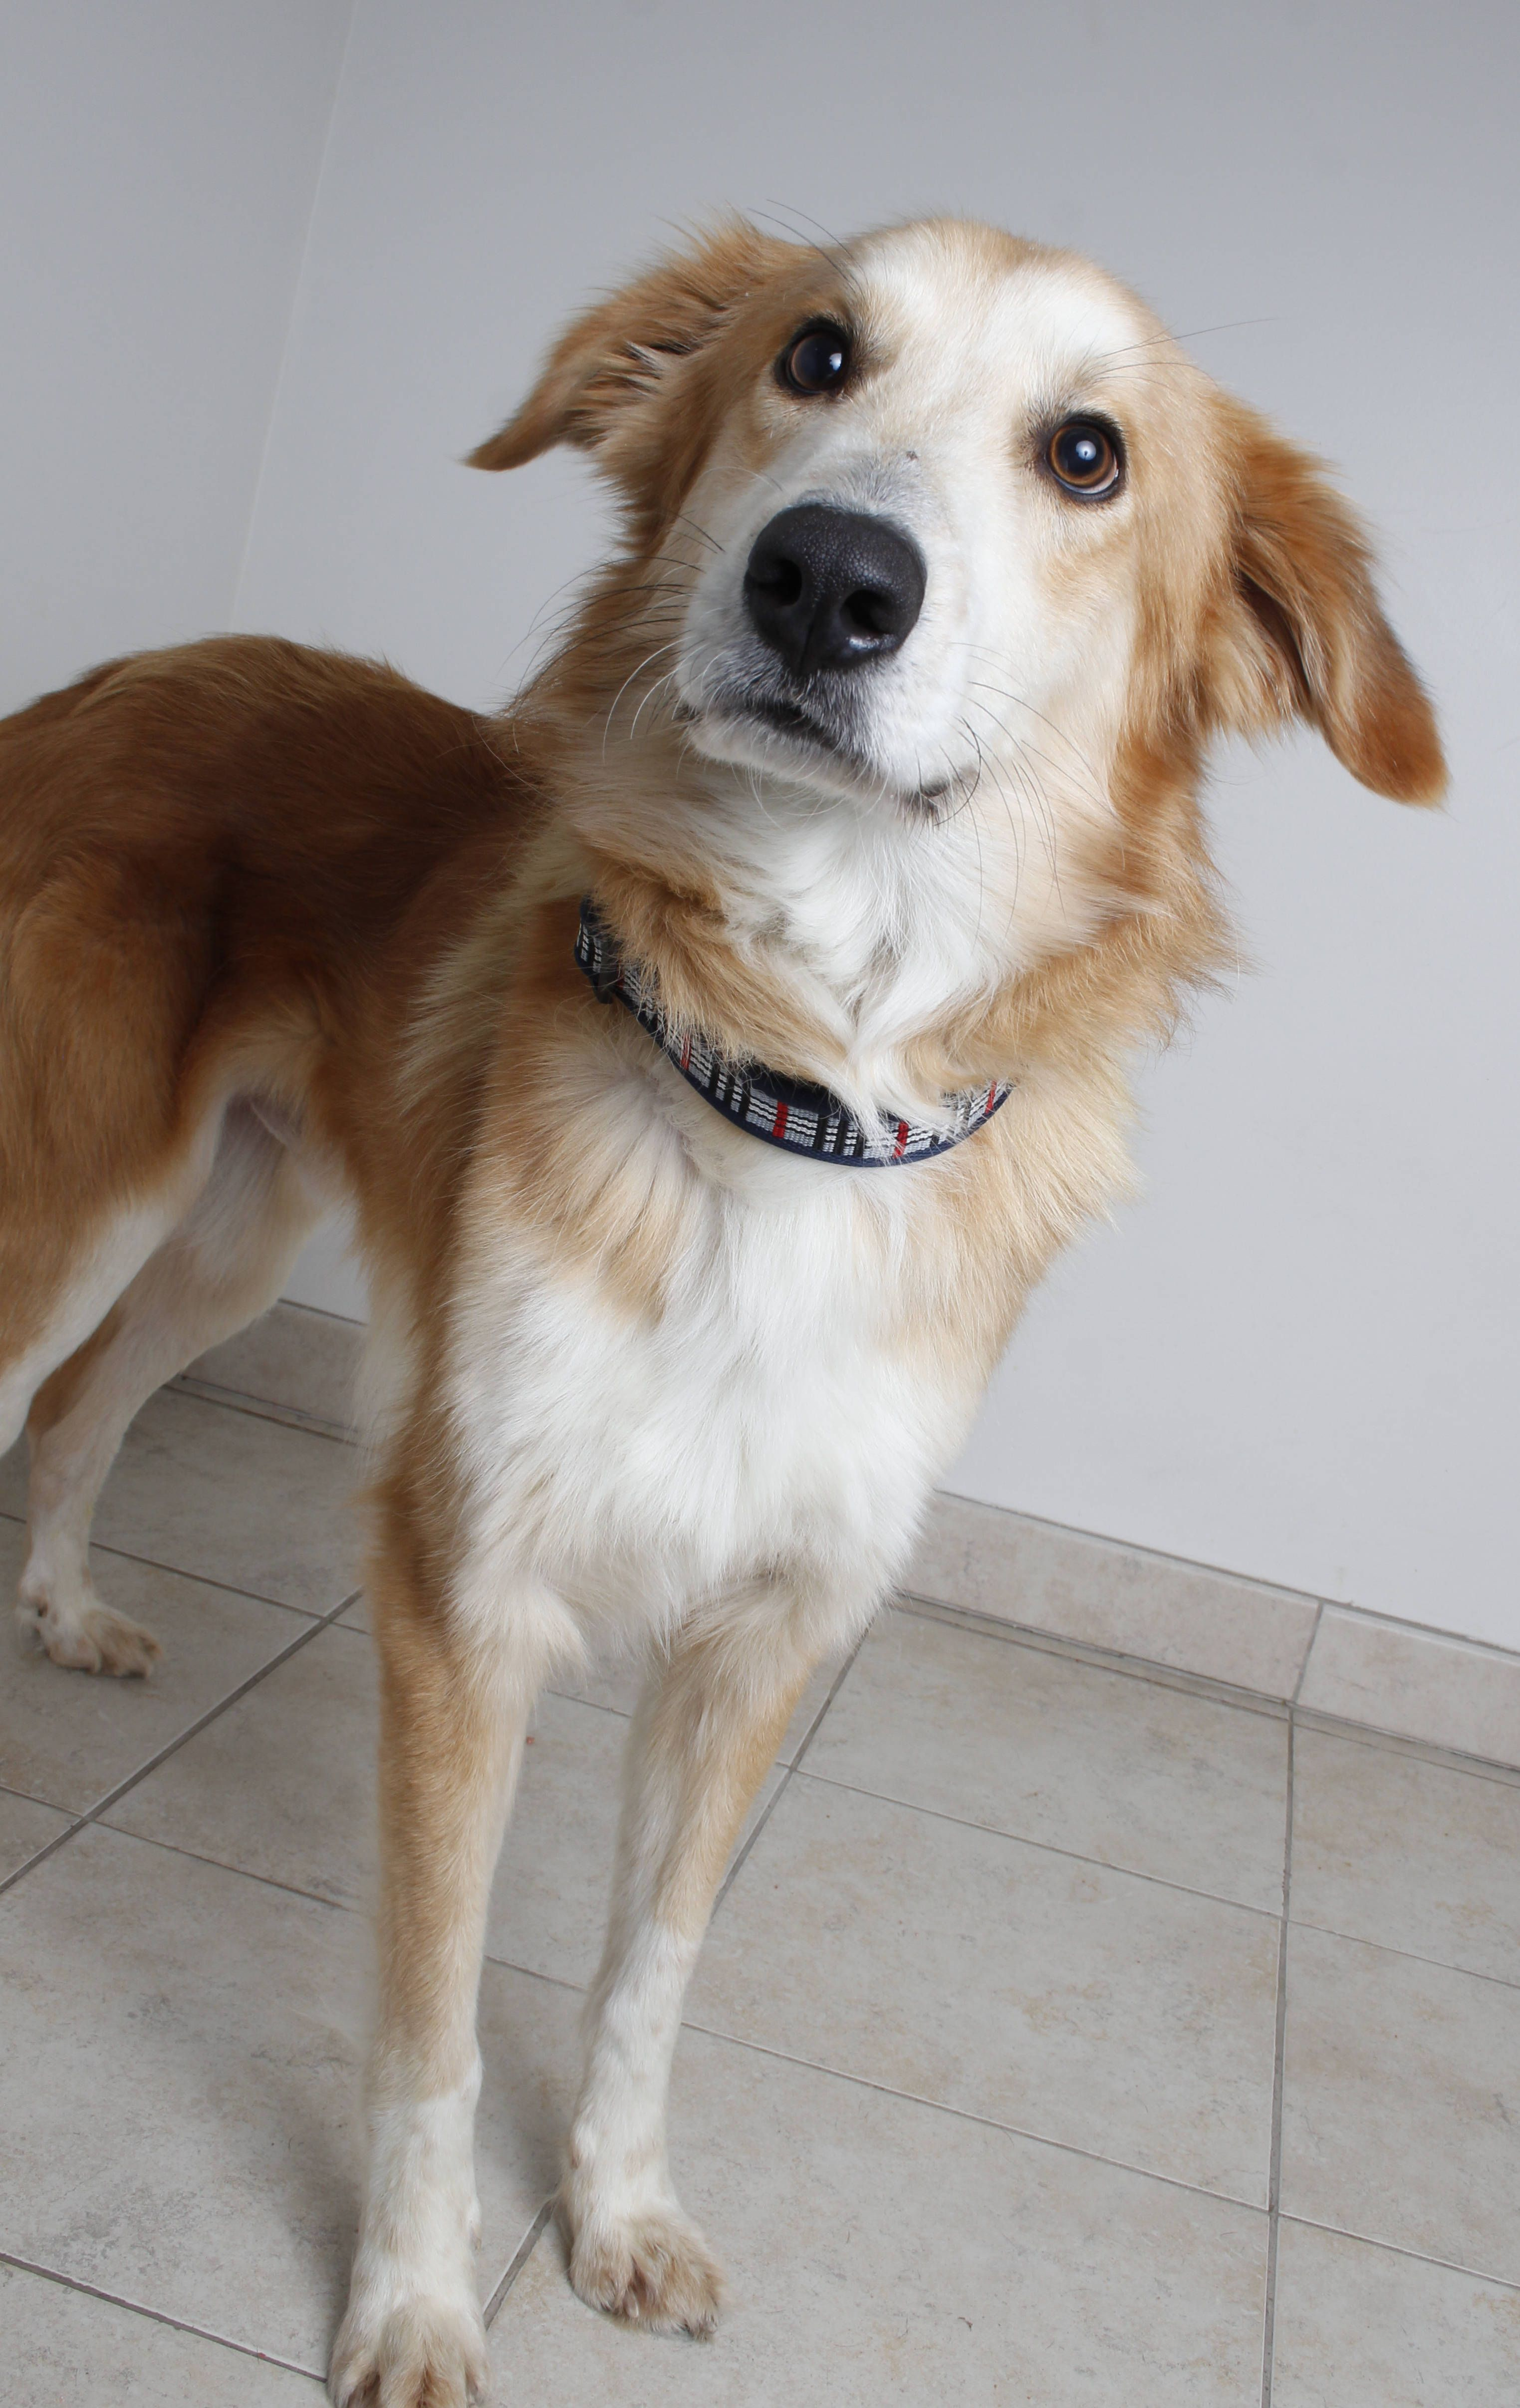 Gollie dog for Adoption in Eden Prairie, MN. ADN741723 on